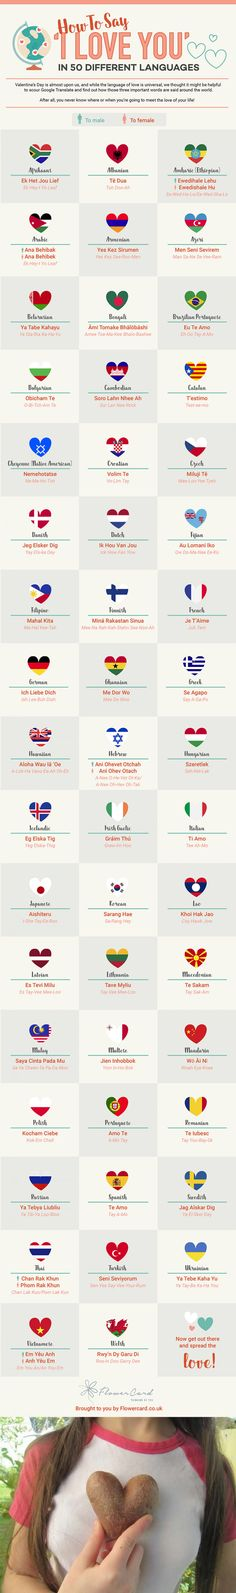 How To Say 'I Love You' In 50 Different Languages